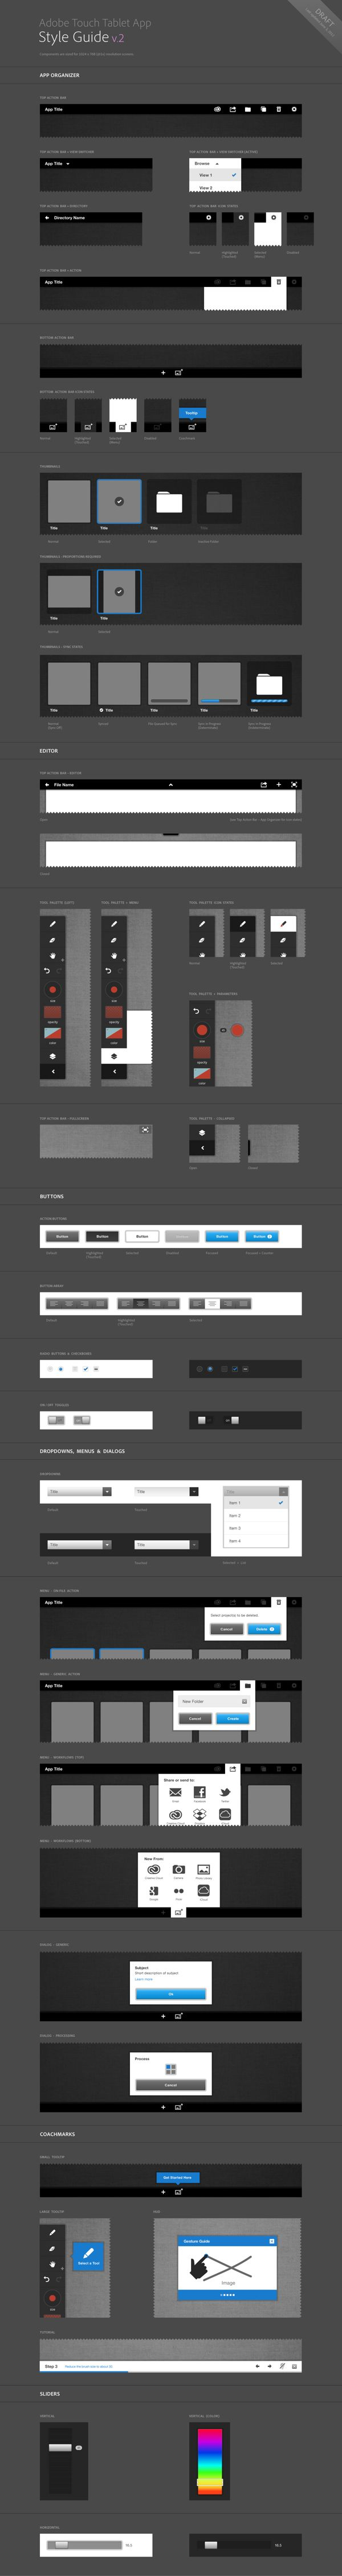 Adobe Touch Tablet Style Guide | Designer: Gabriel Campbell